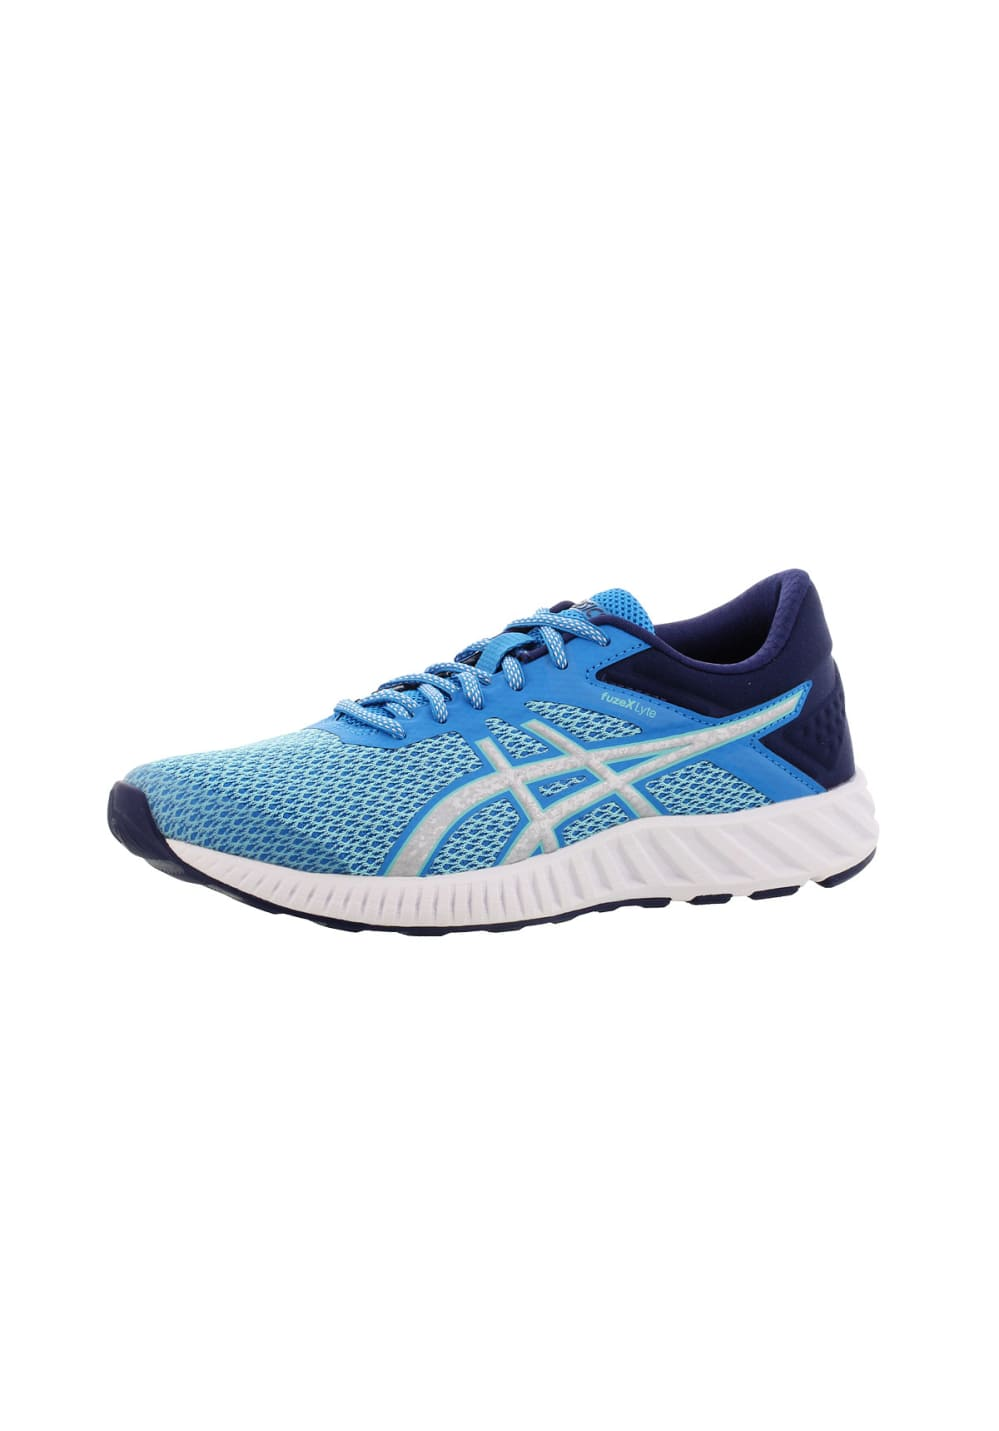 premium selection 9a192 54f77 Next. New. ASICS. fuzeX Lyte 2 - Running shoes for Women